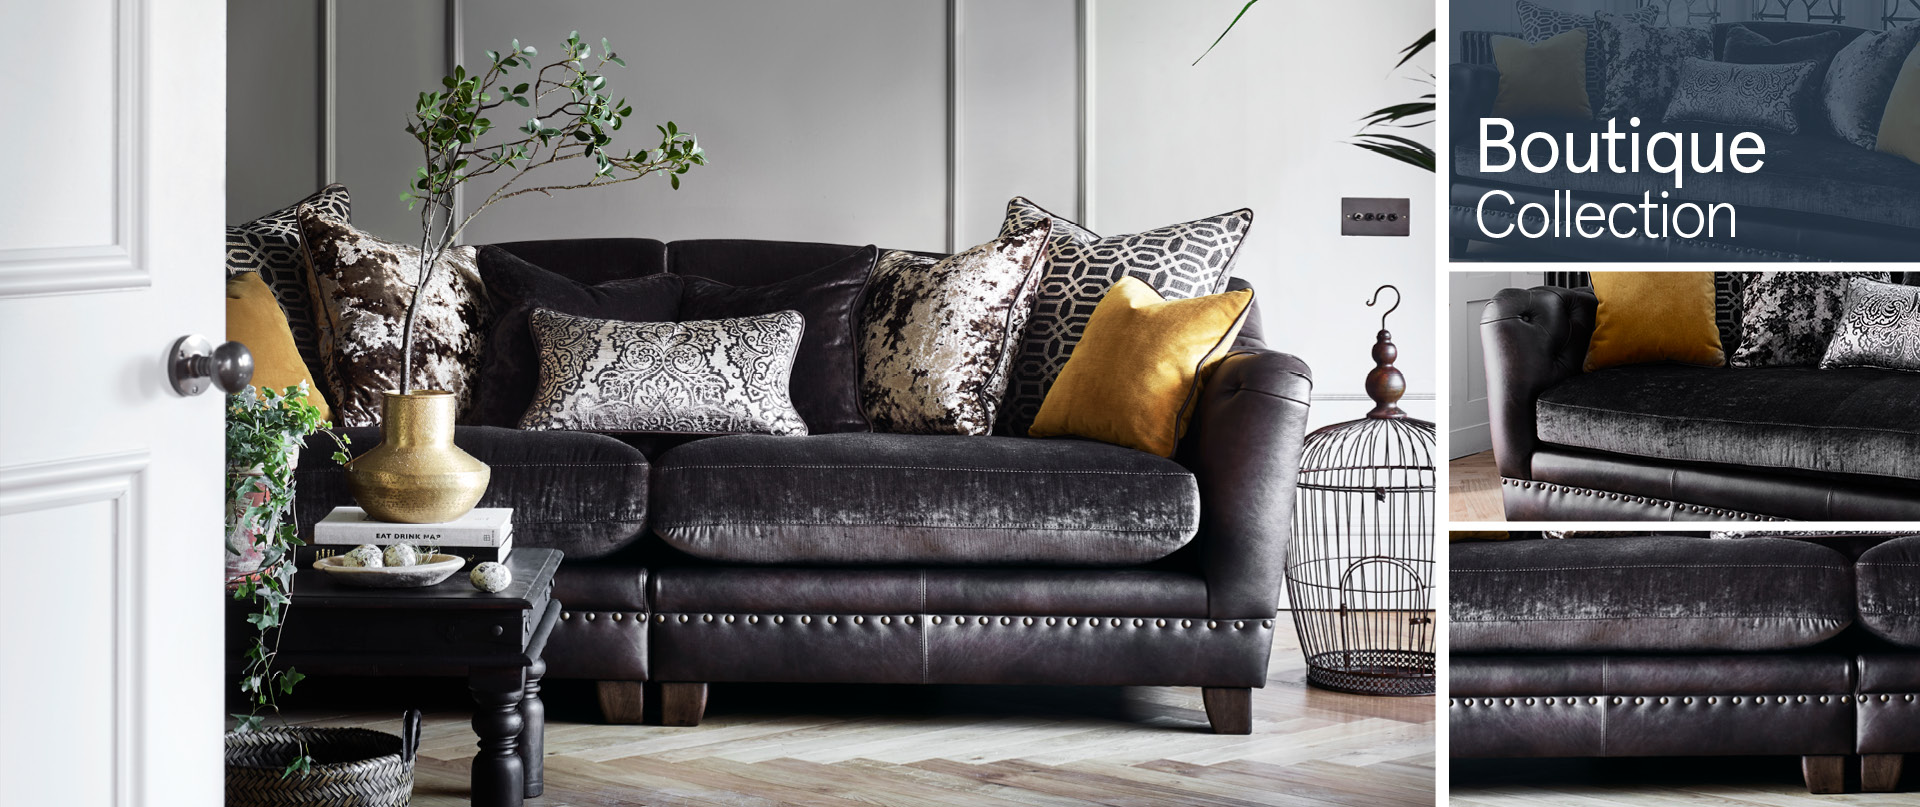 Boutique All-Leather-and-Fabric-Mix-Sofas Ranges